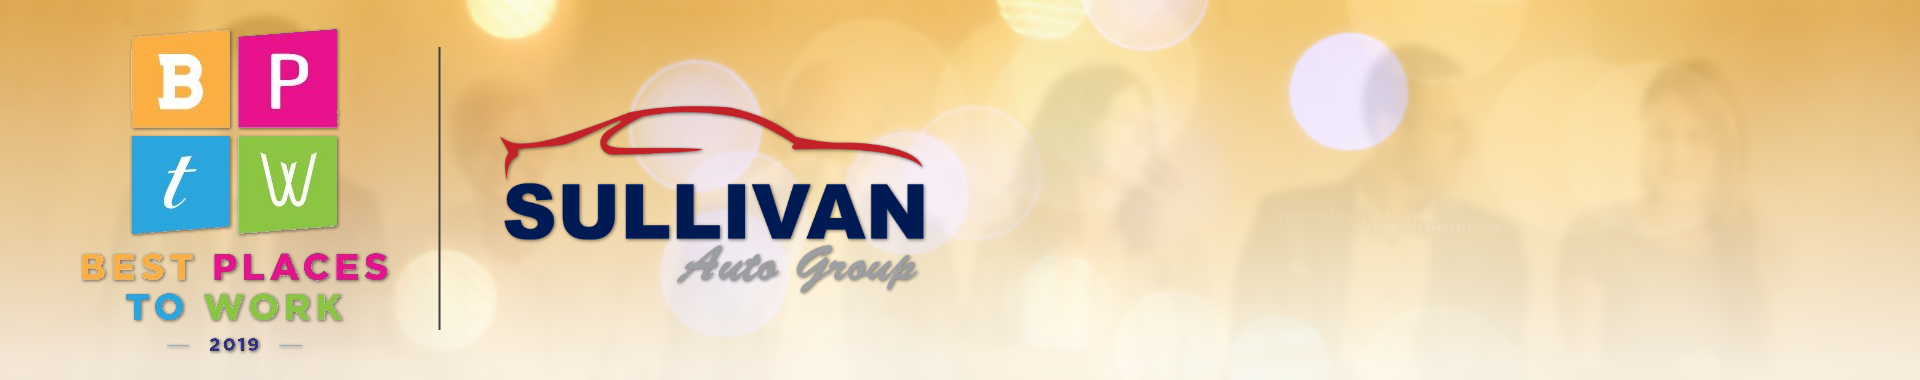 Best Places To Work 2019 Award - The Sullivan Auto Group